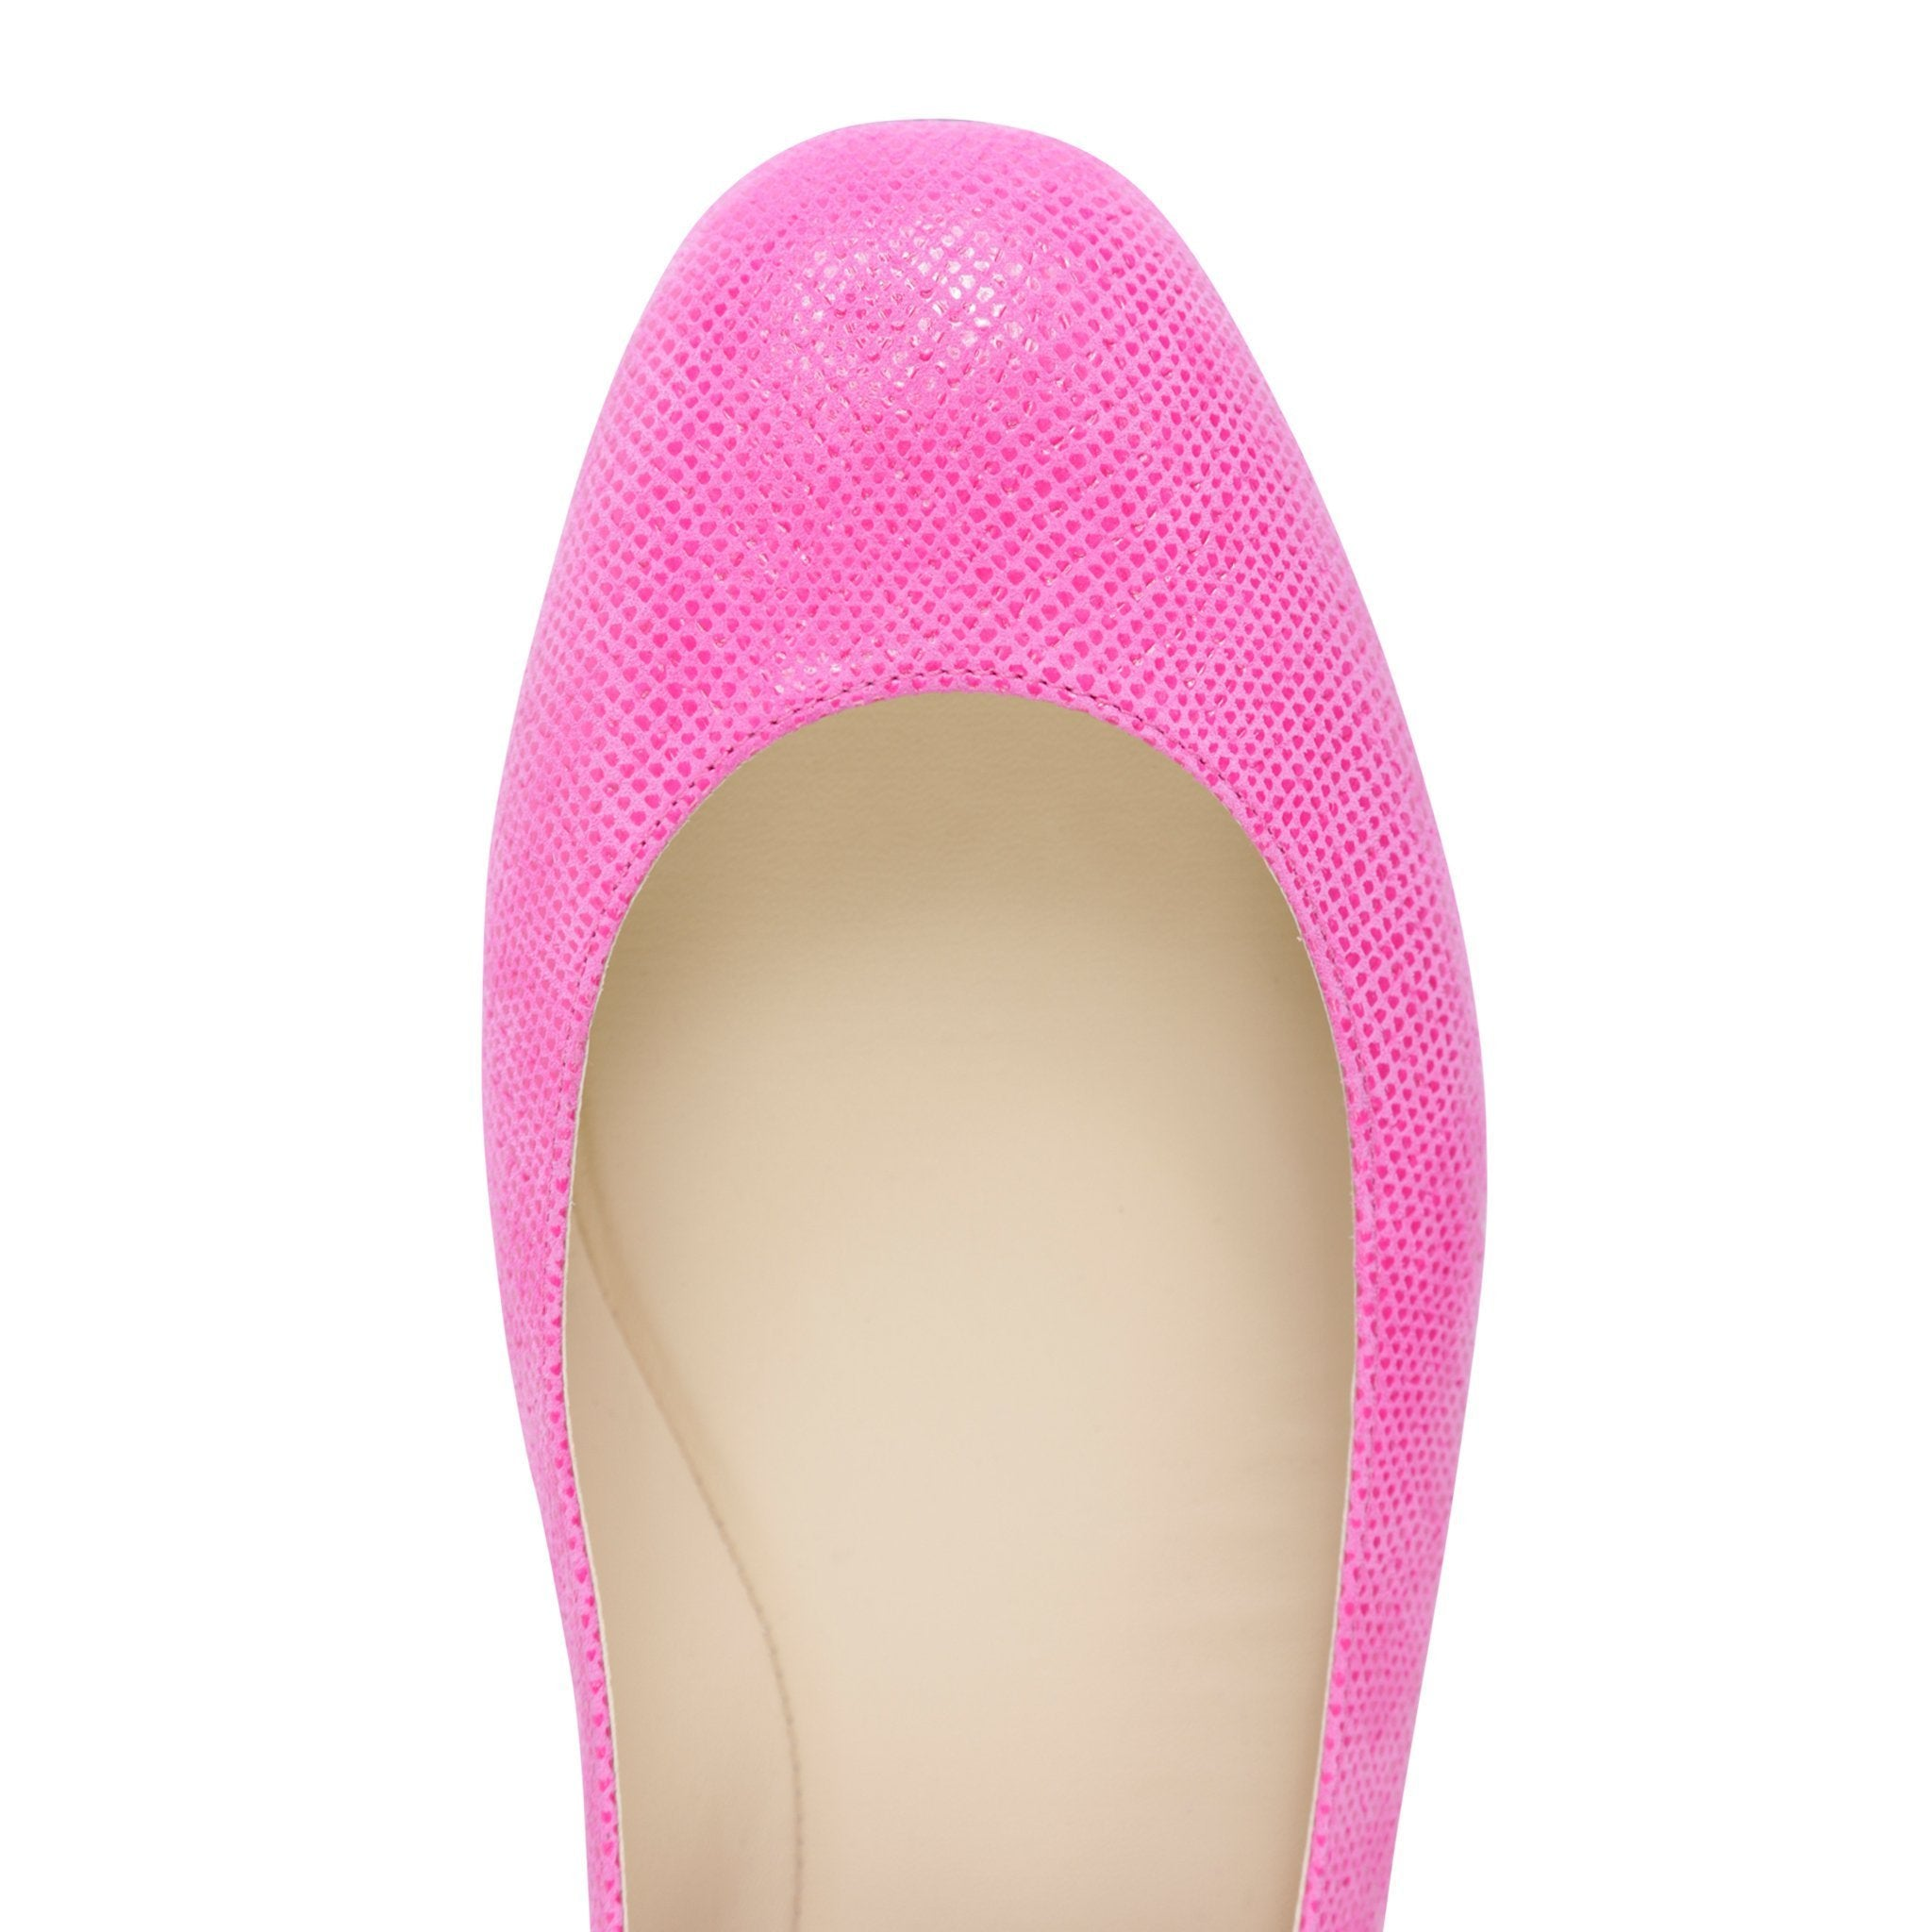 TORINO - Karung Epiphany Pink + Nappa Panna, VIAJIYU - Women's Hand Made Sustainable Luxury Shoes. Made in Italy. Made to Order.